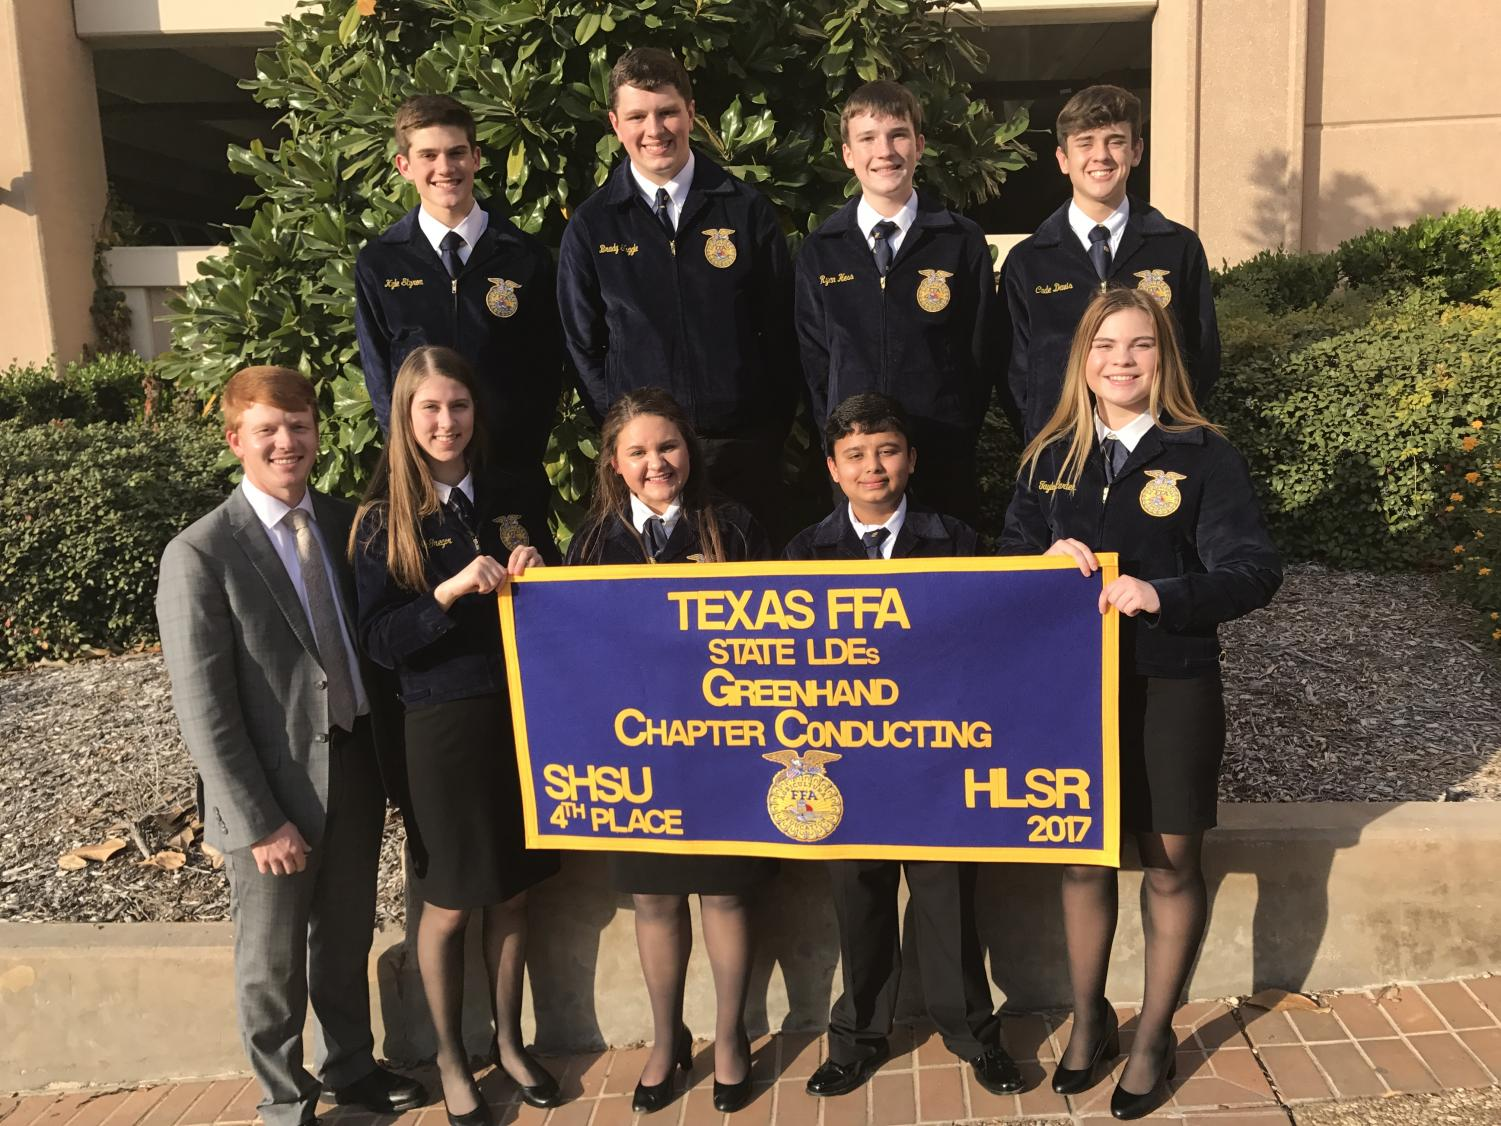 Top Row (L to R): Kyle Styron, Brady Tuggle, Ryan Hess, Cade Davis Bottom Row (L to R): Mr. Best, Maggie McGregor, Chloe Krause, Subarna Pokhrel, Taylor Carter.  These FFA members competed in the chapter conducting event and placed fourth. This is one of numerous events that FFA participated in this past year. Photo credit to Mrs. Bowers.